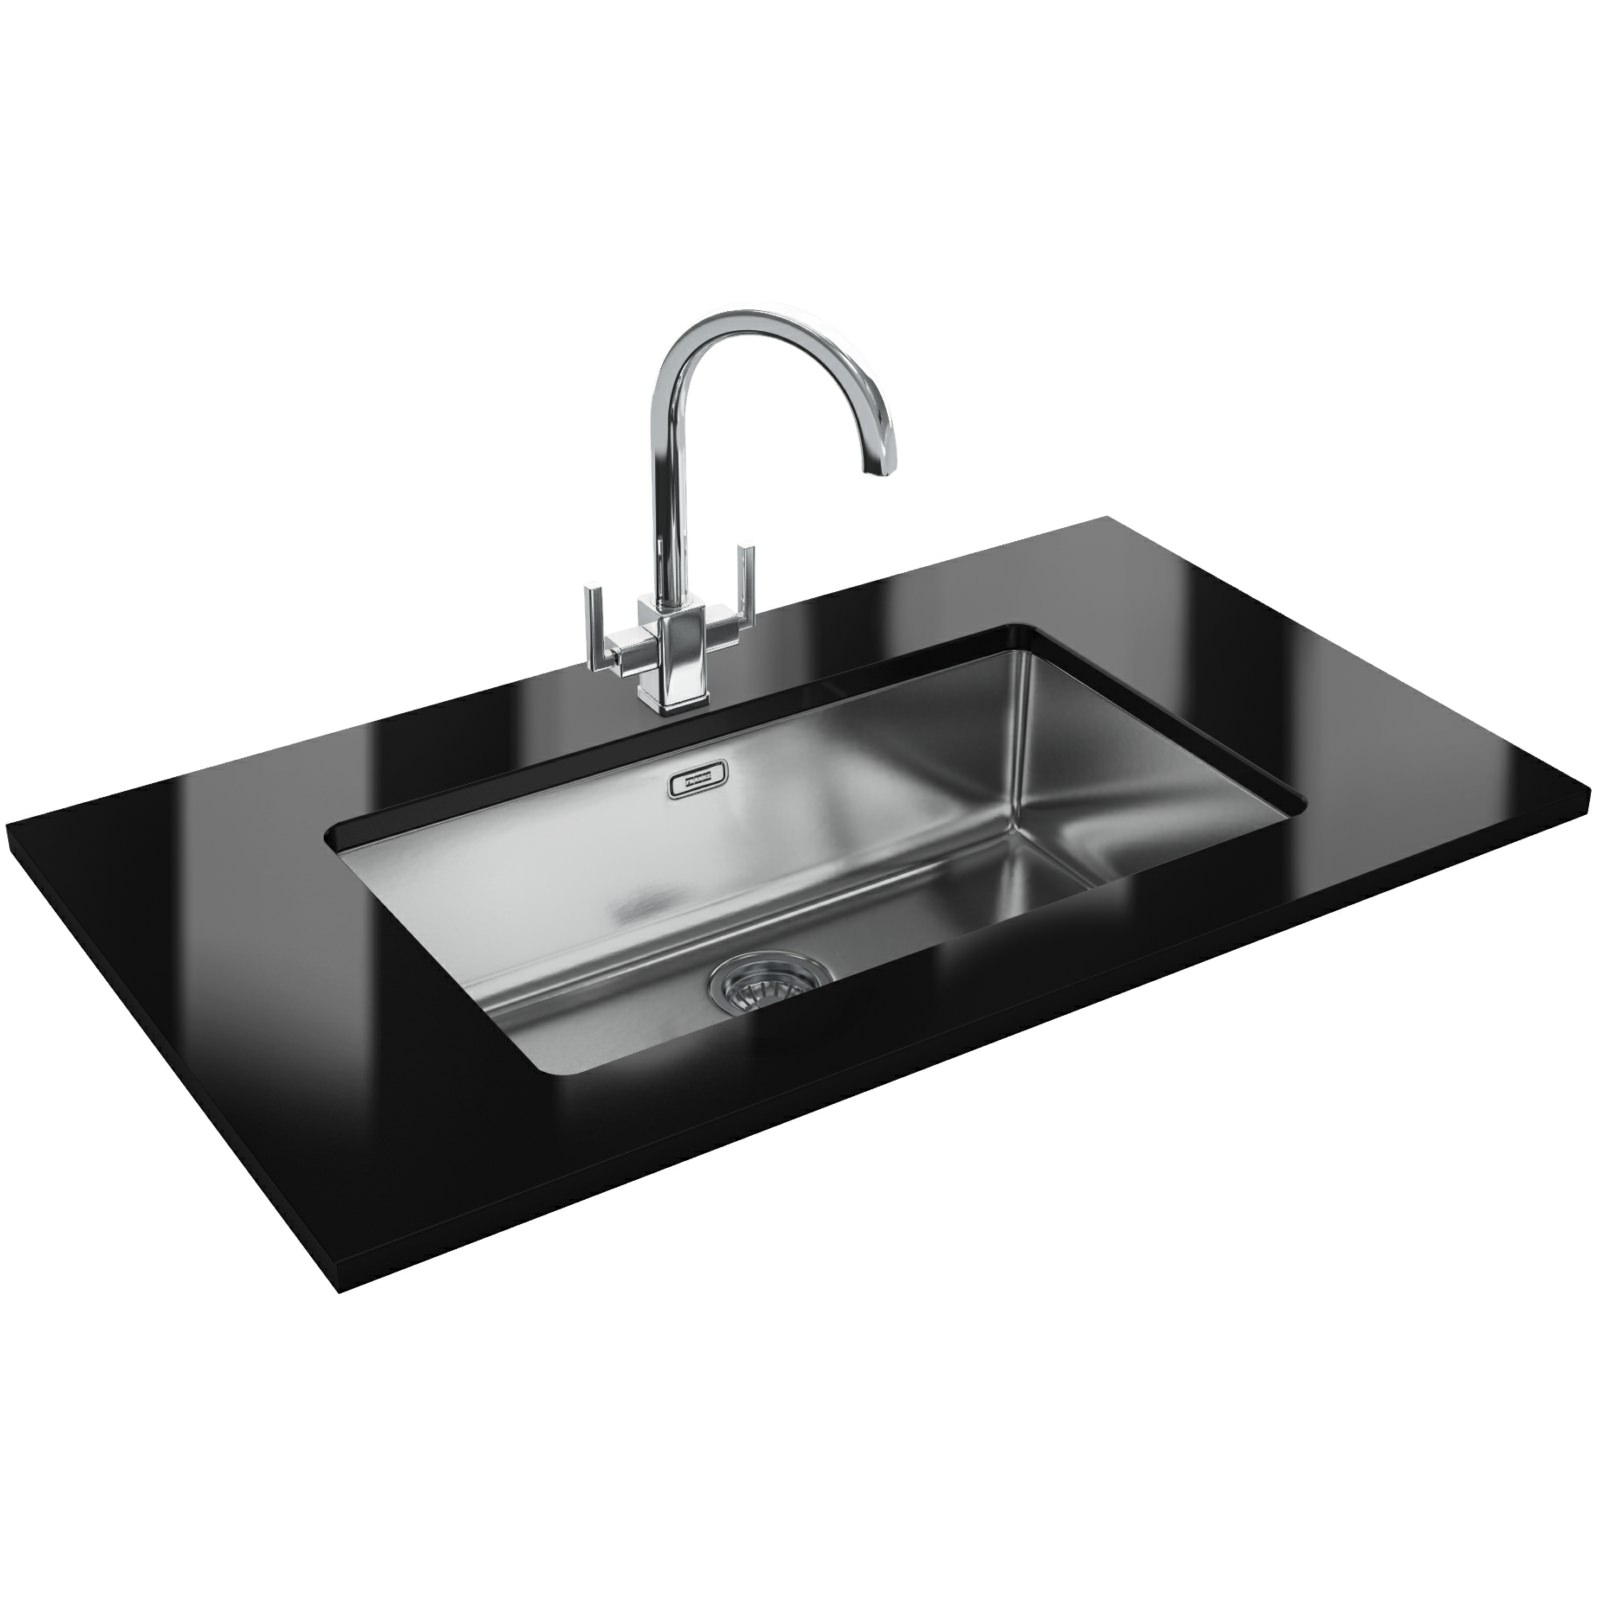 designer kitchen sinks uk franke kubus designer pack kbx 110 70 stainless steel 170